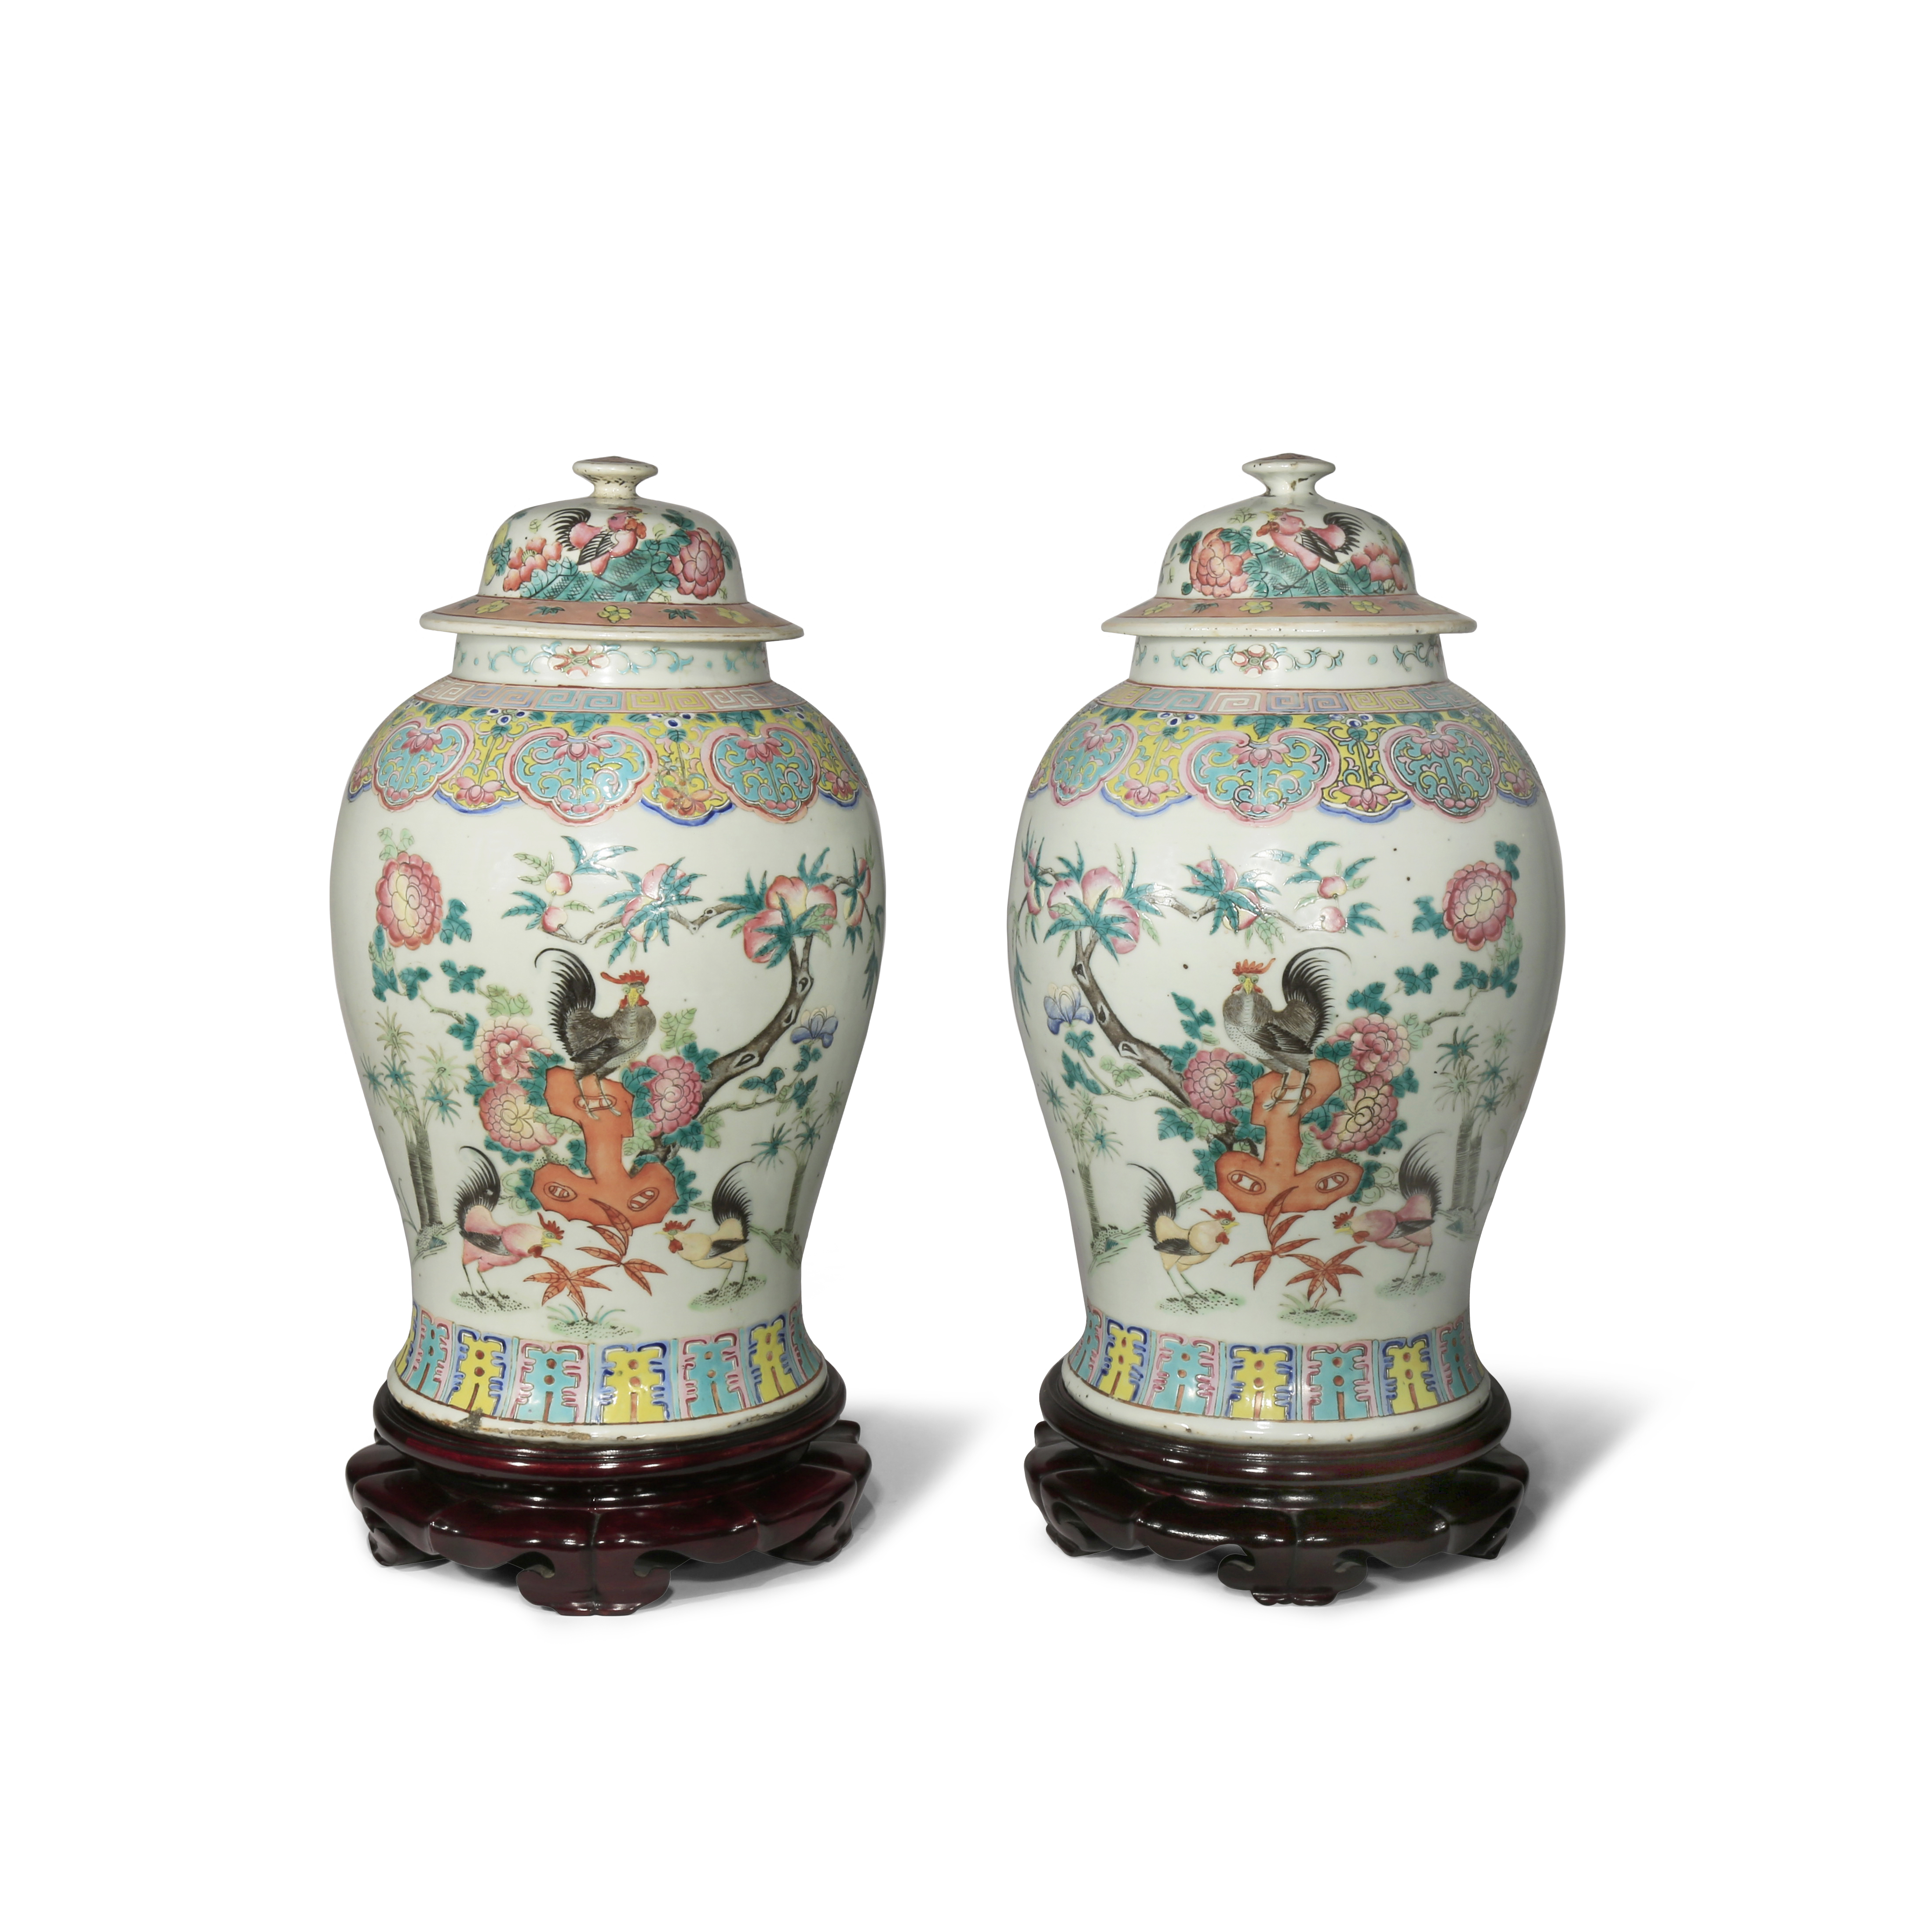 A PAIR OF CHINESE FAMILLE ROSE 'COCKERELS' BALUSTER VASES AND COVERS